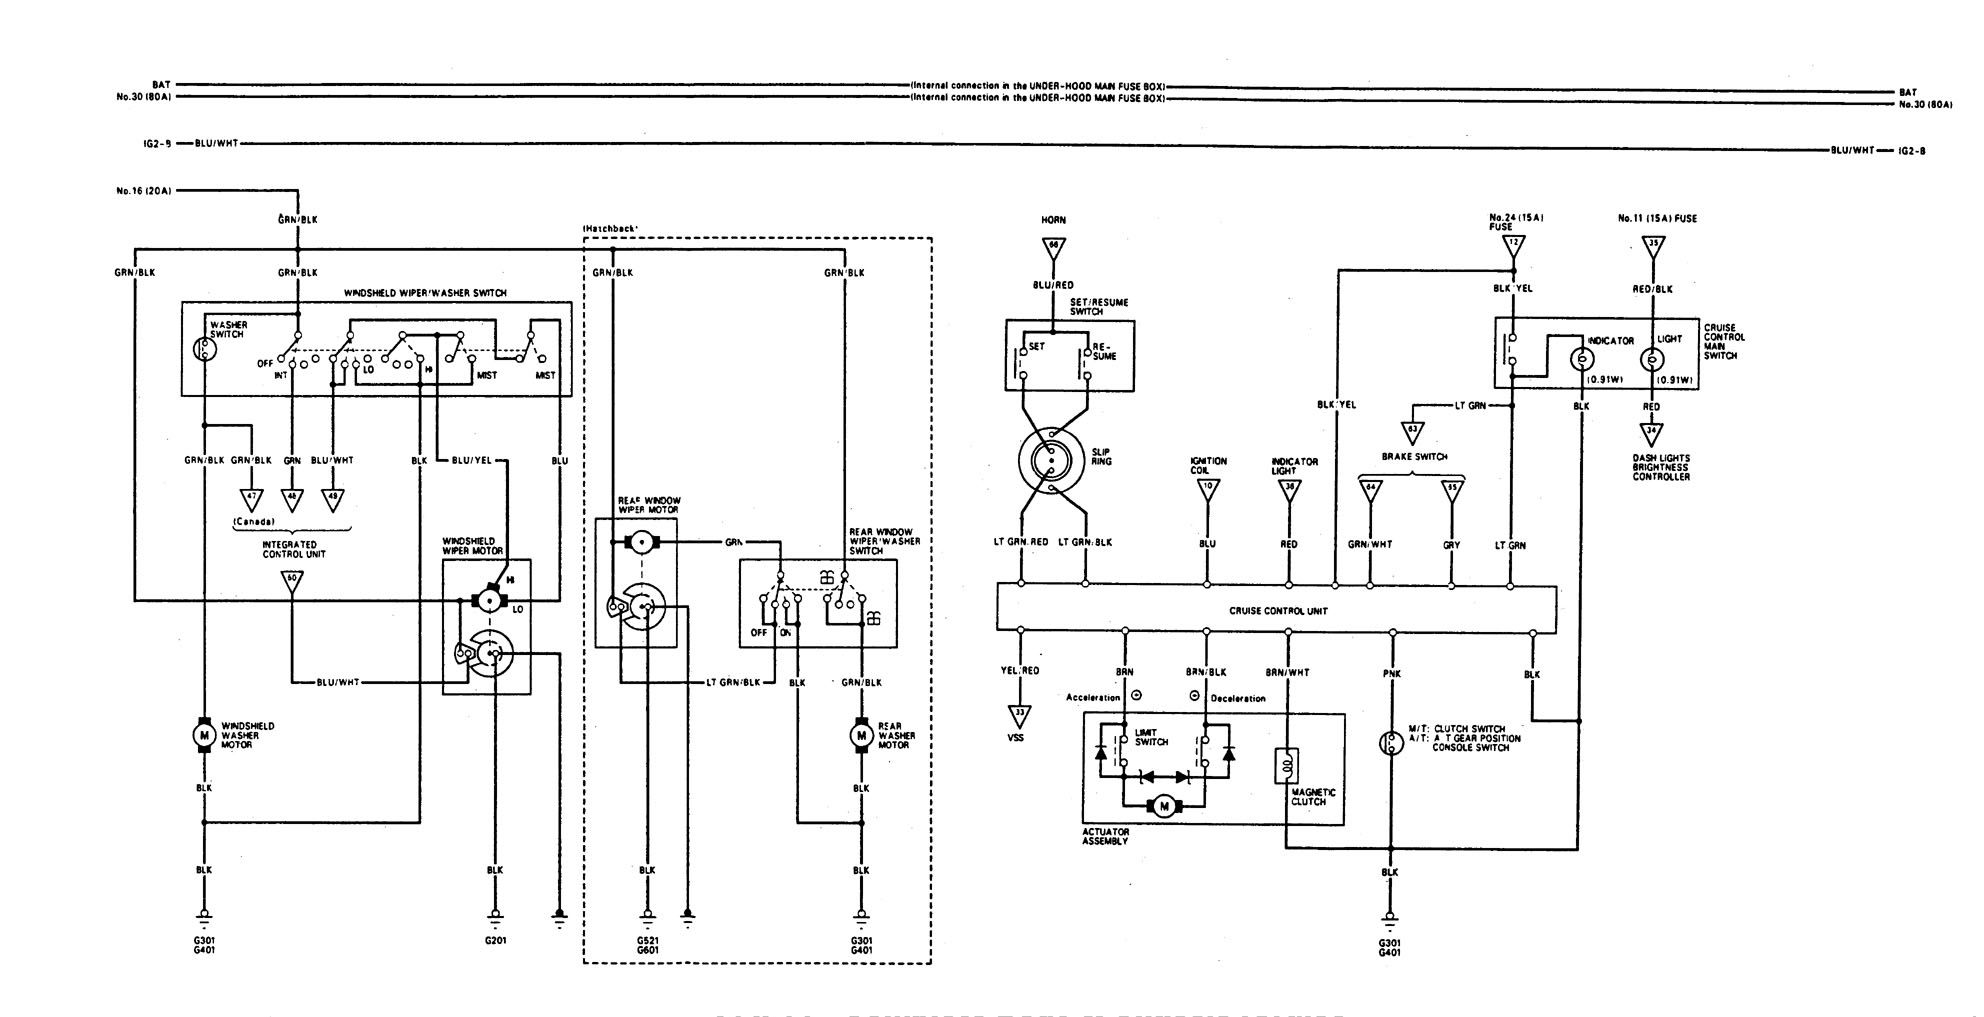 4d118 Wr450f Wiring Diagram